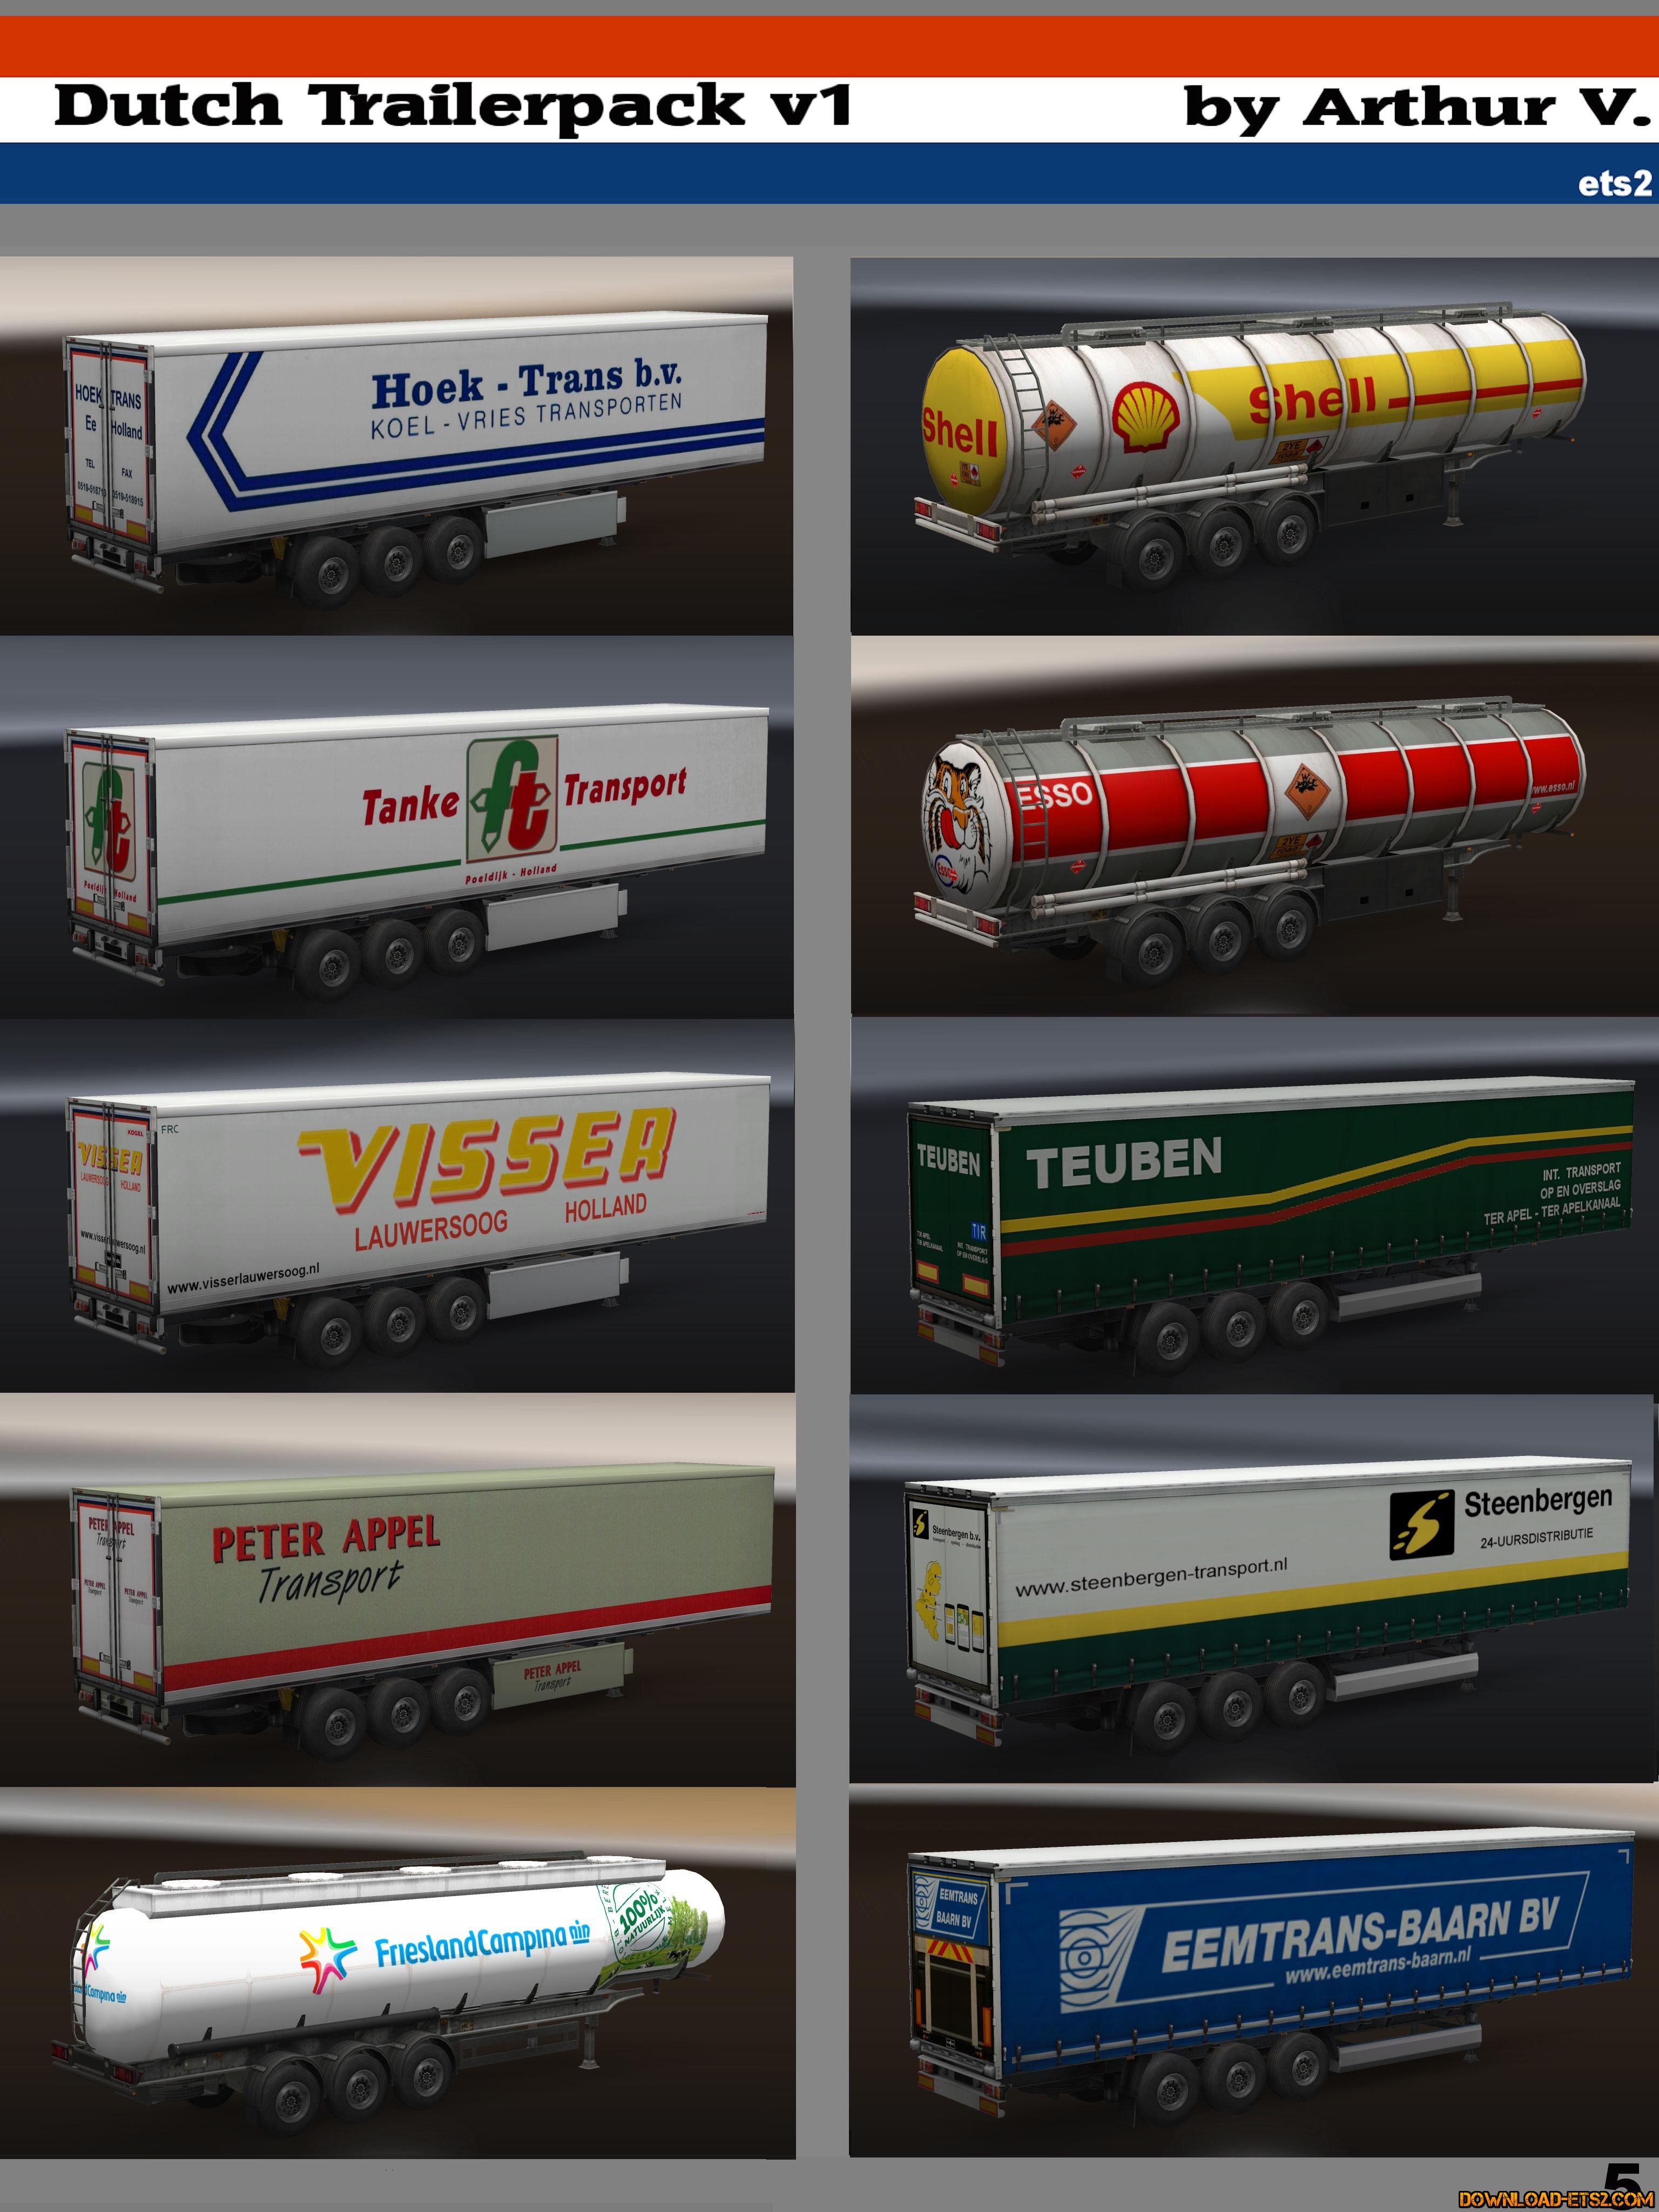 Dutch Trailerpack v.1 by Arthur V